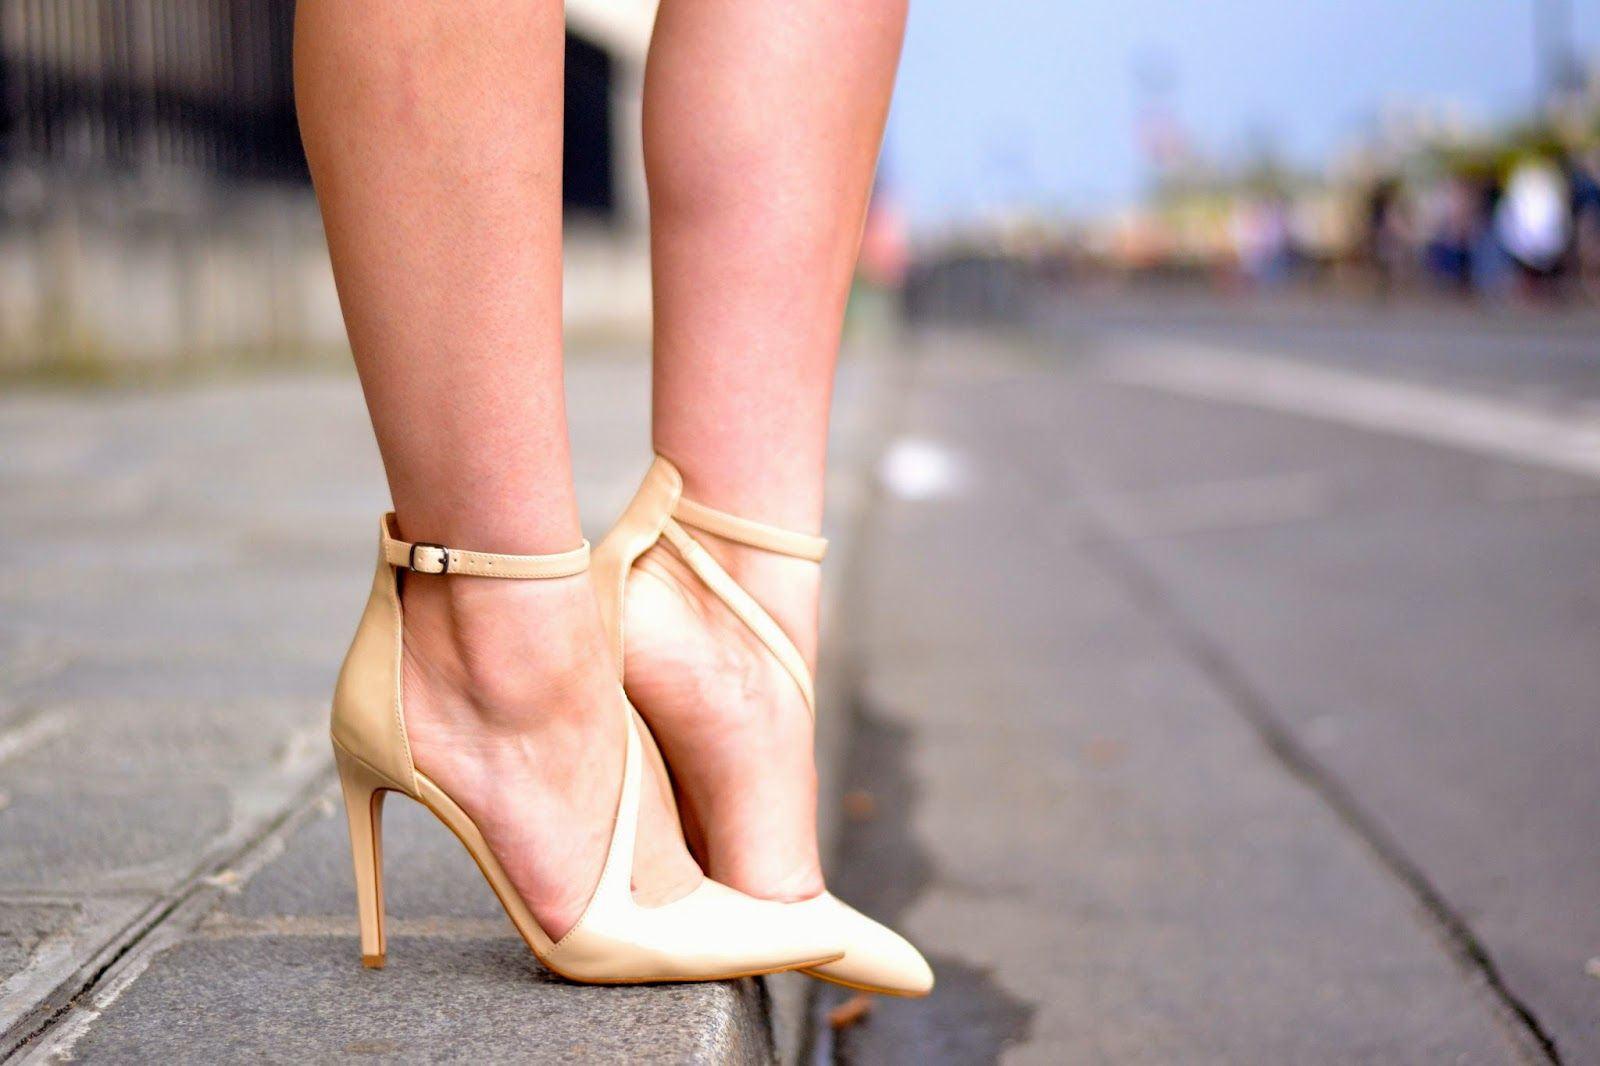 Stilletos